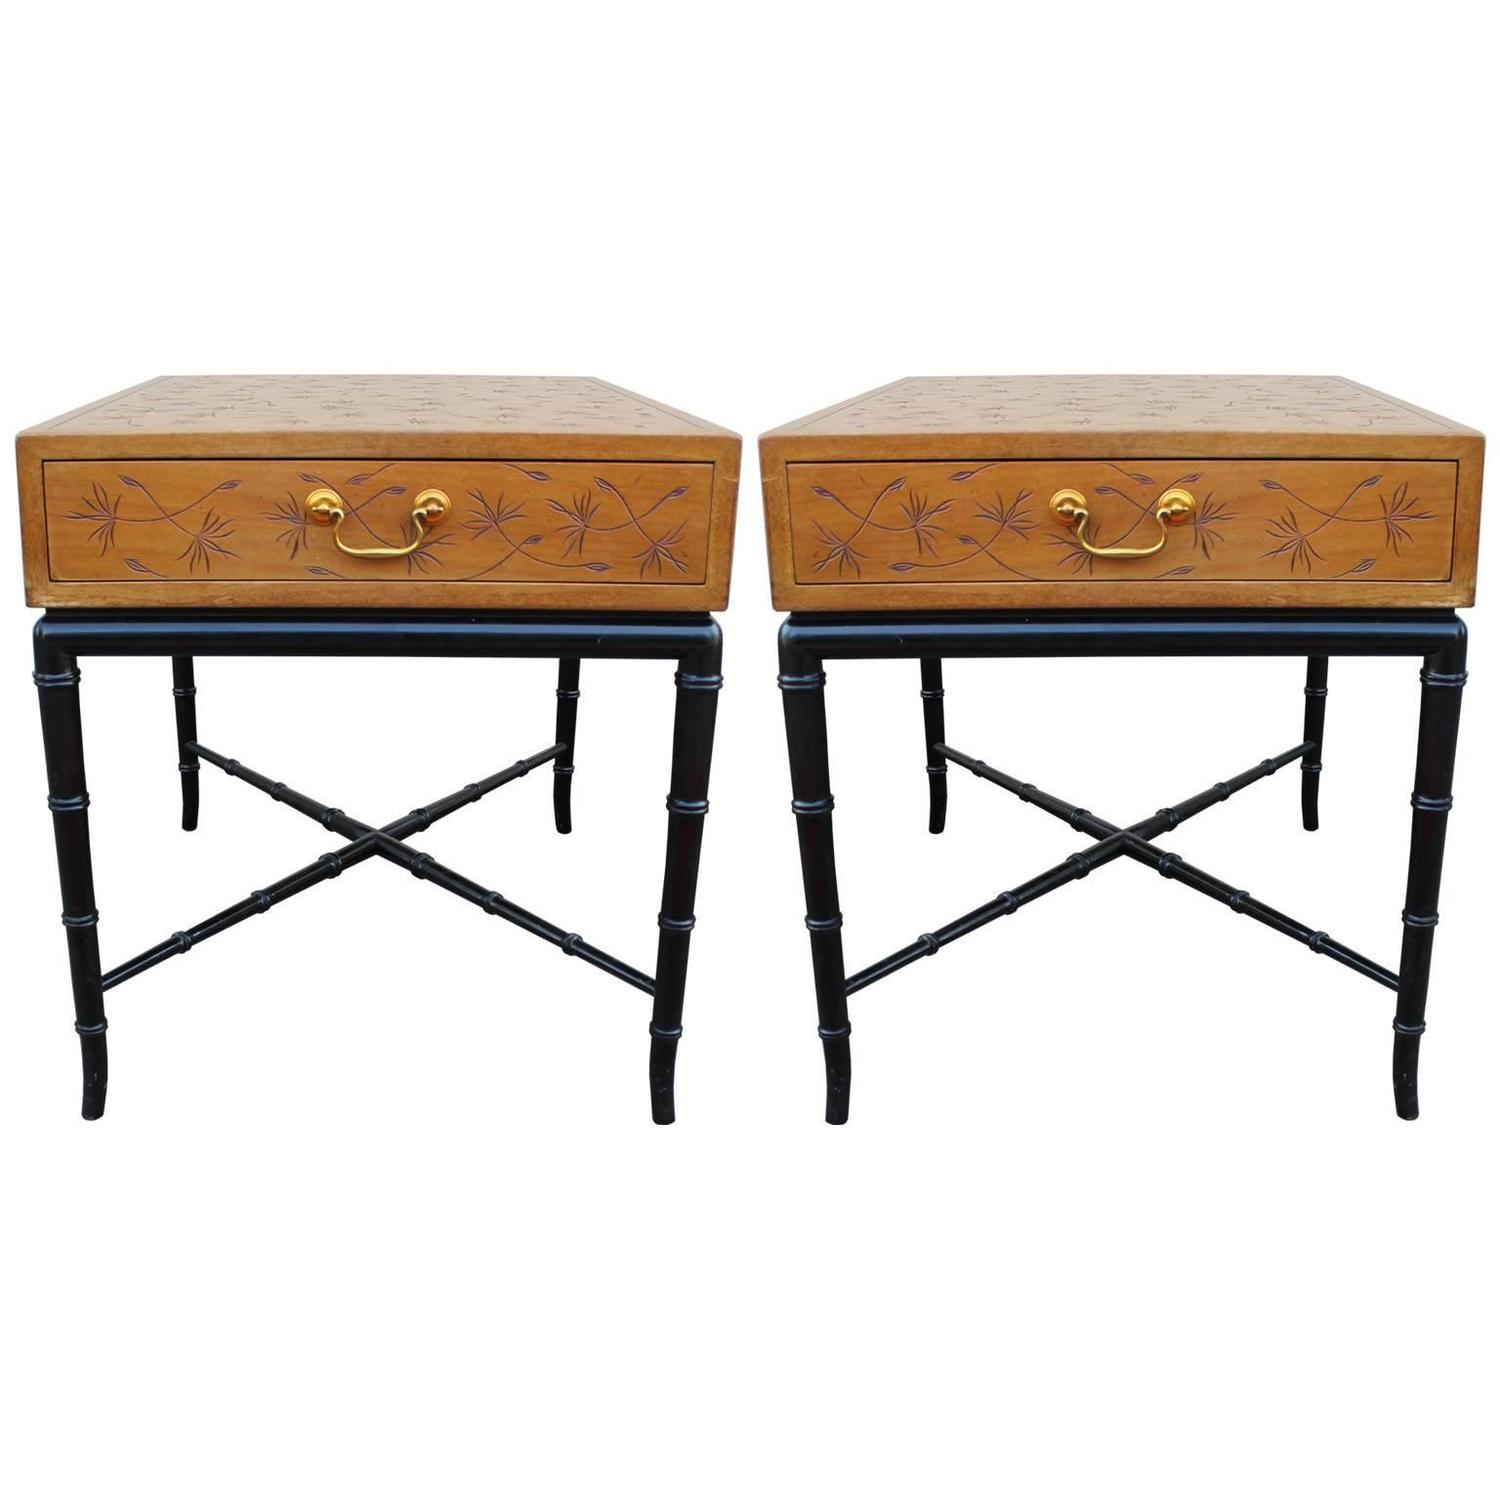 Pair of Incised Kittinger Modern Side Tables Nightstands with